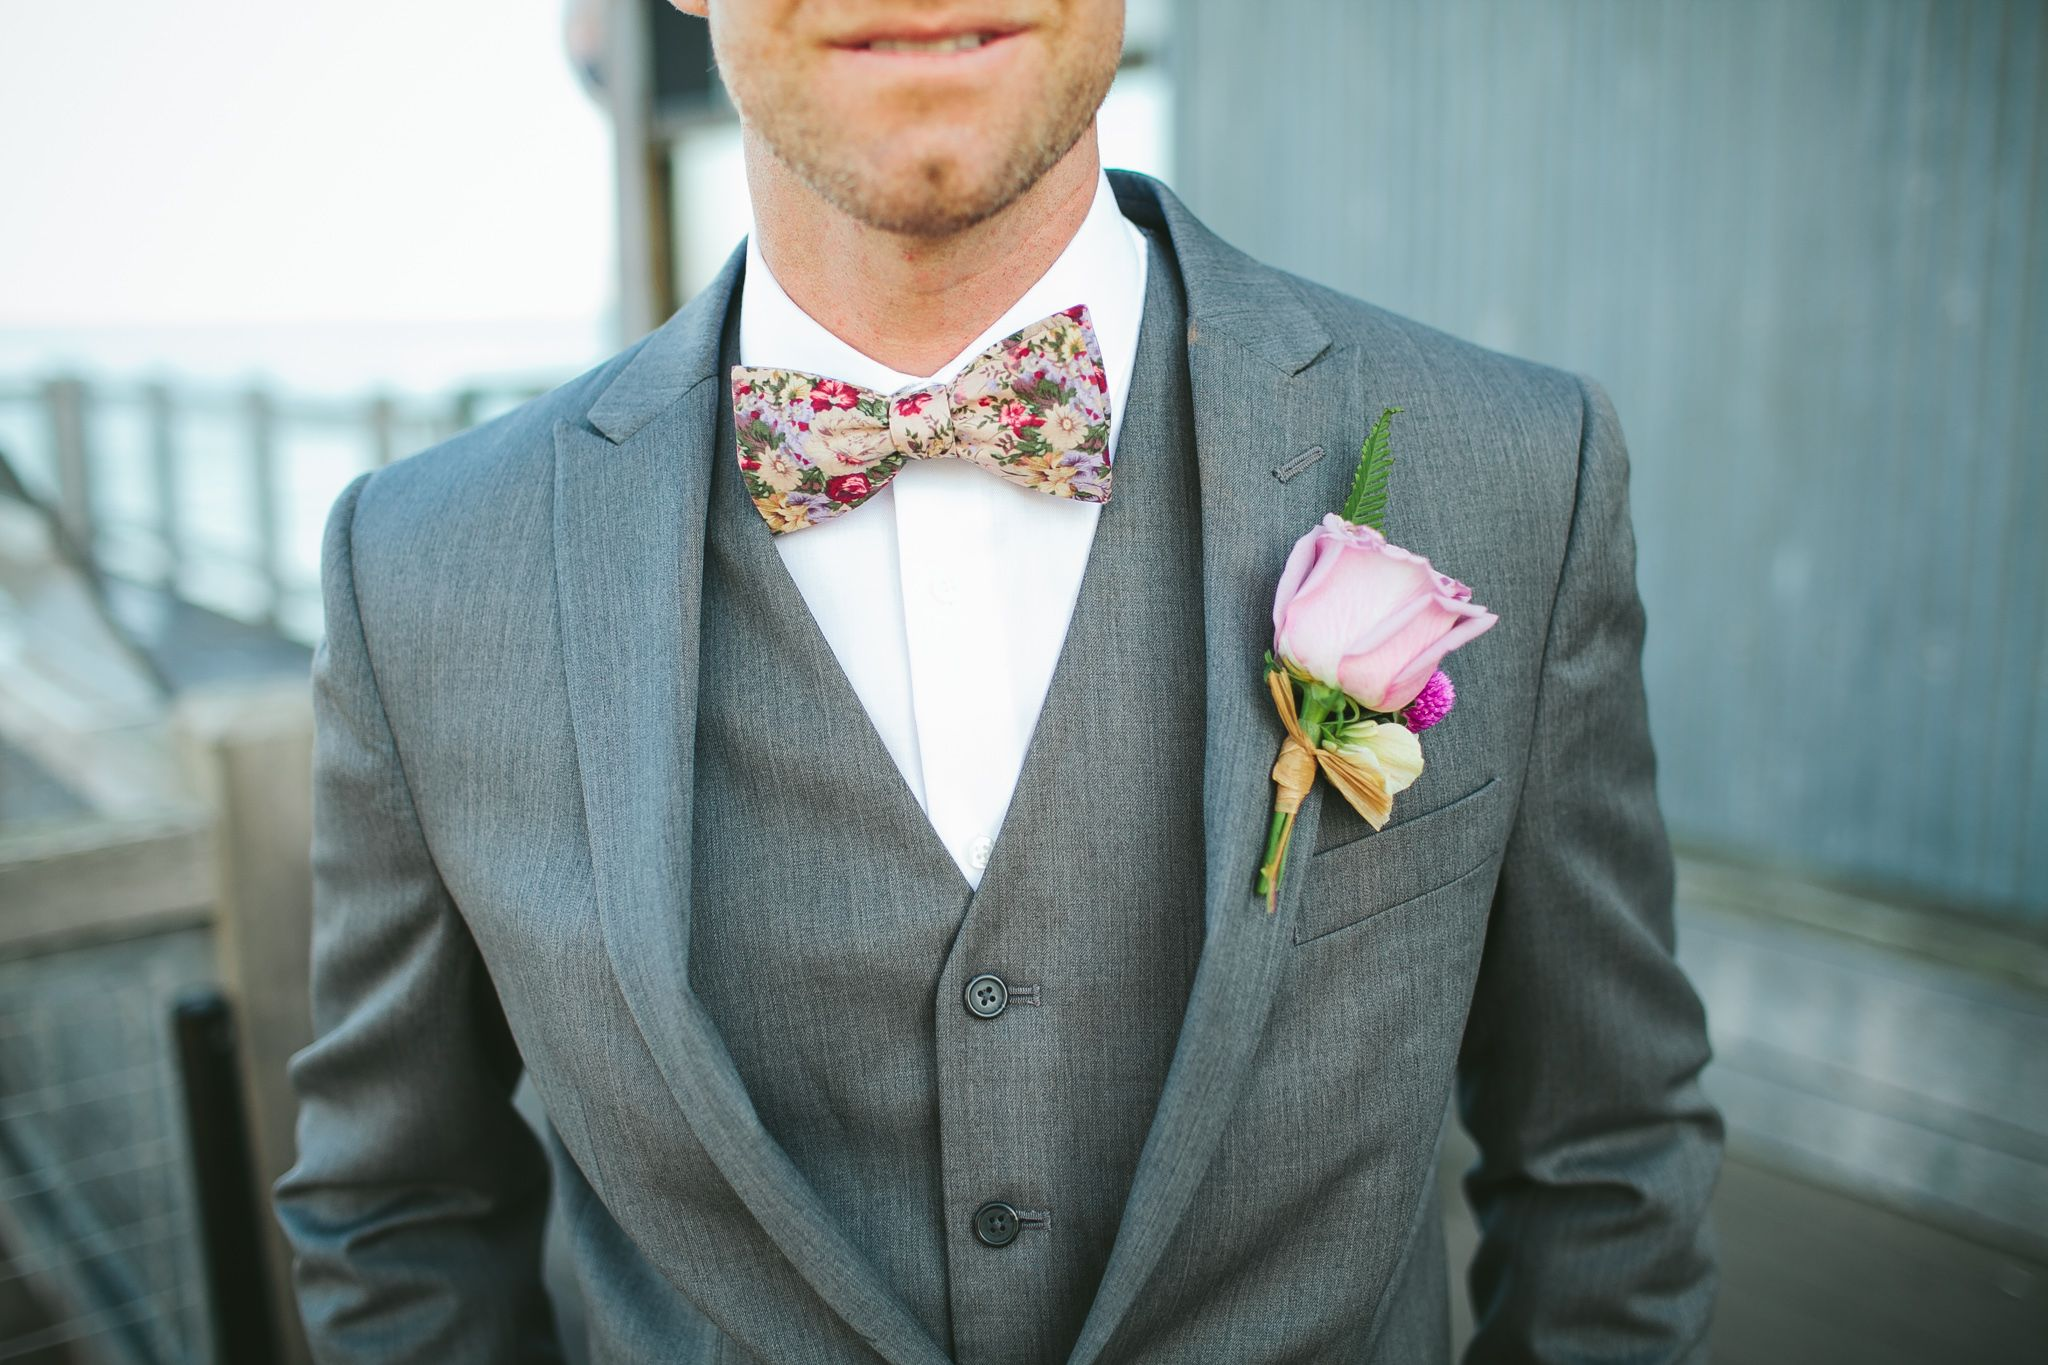 Floral Bow Tie with Gray 3-piece suit | Flower Power | Pinterest ...